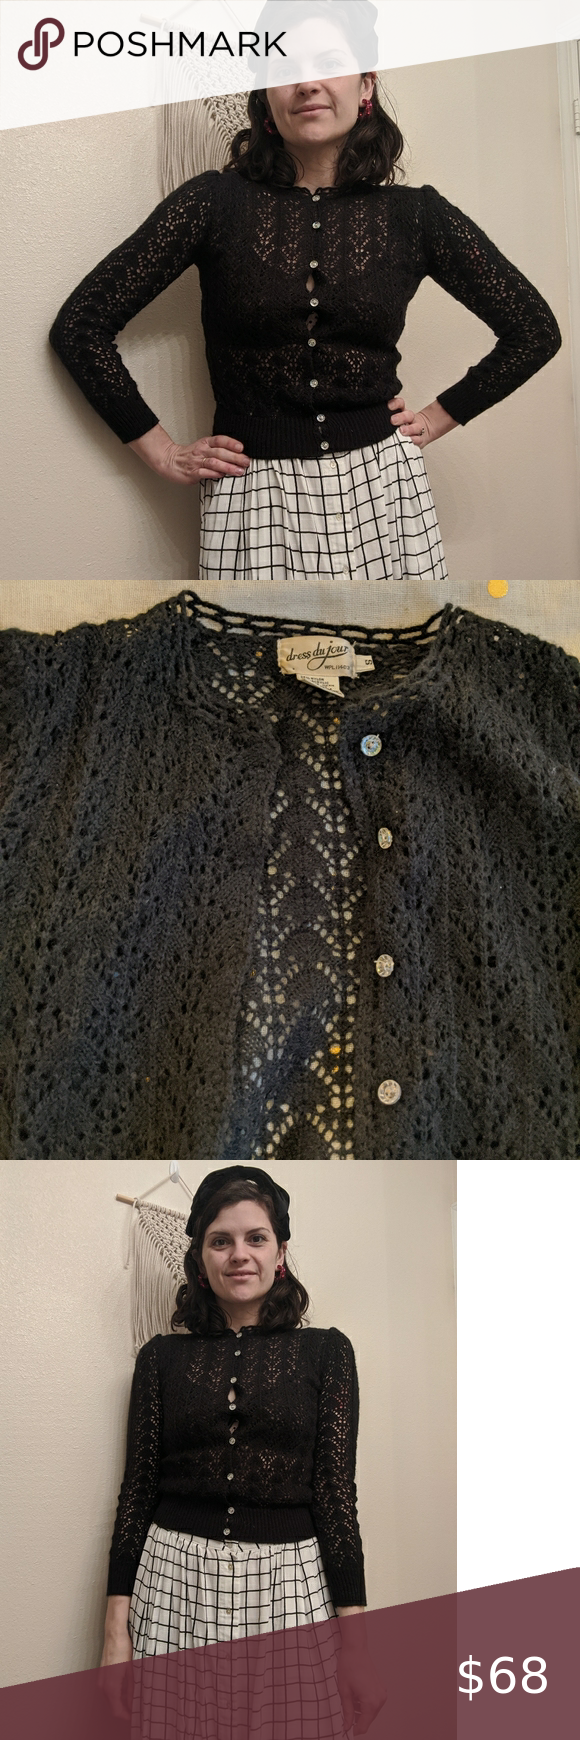 More Forties Inspired Flair: Vintage 30s/40s Style Cardigan This Gorgeous Vintage